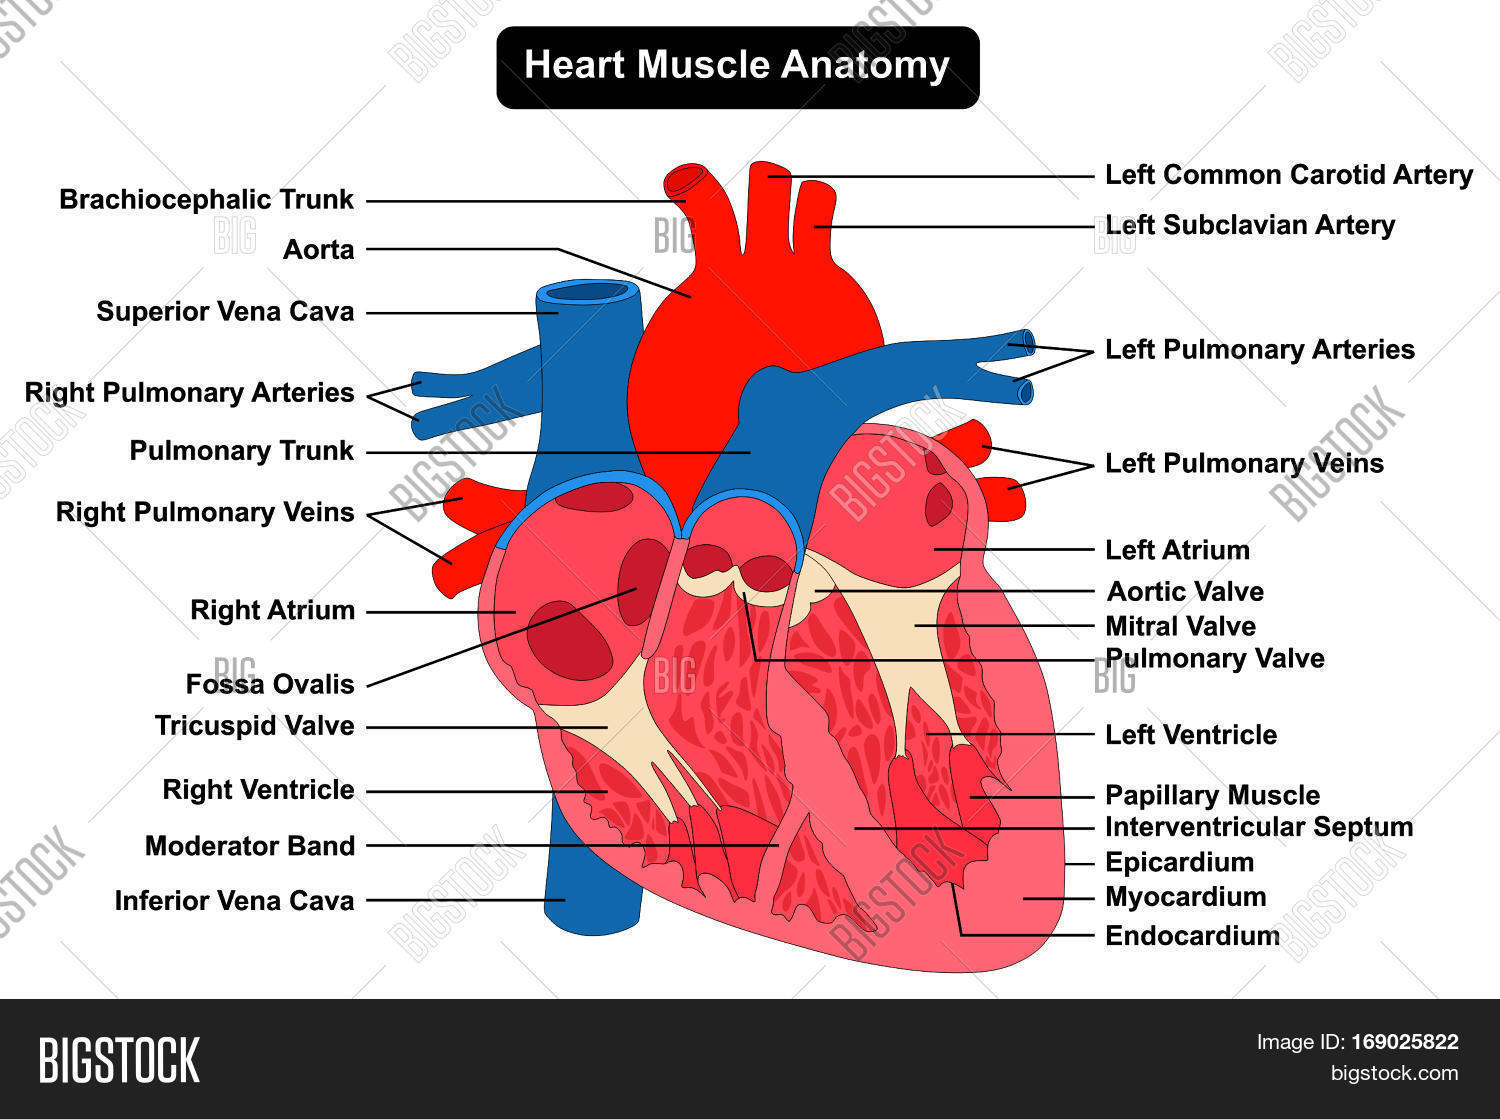 Human Heart Muscle Anatomy Image Photo Bigstock